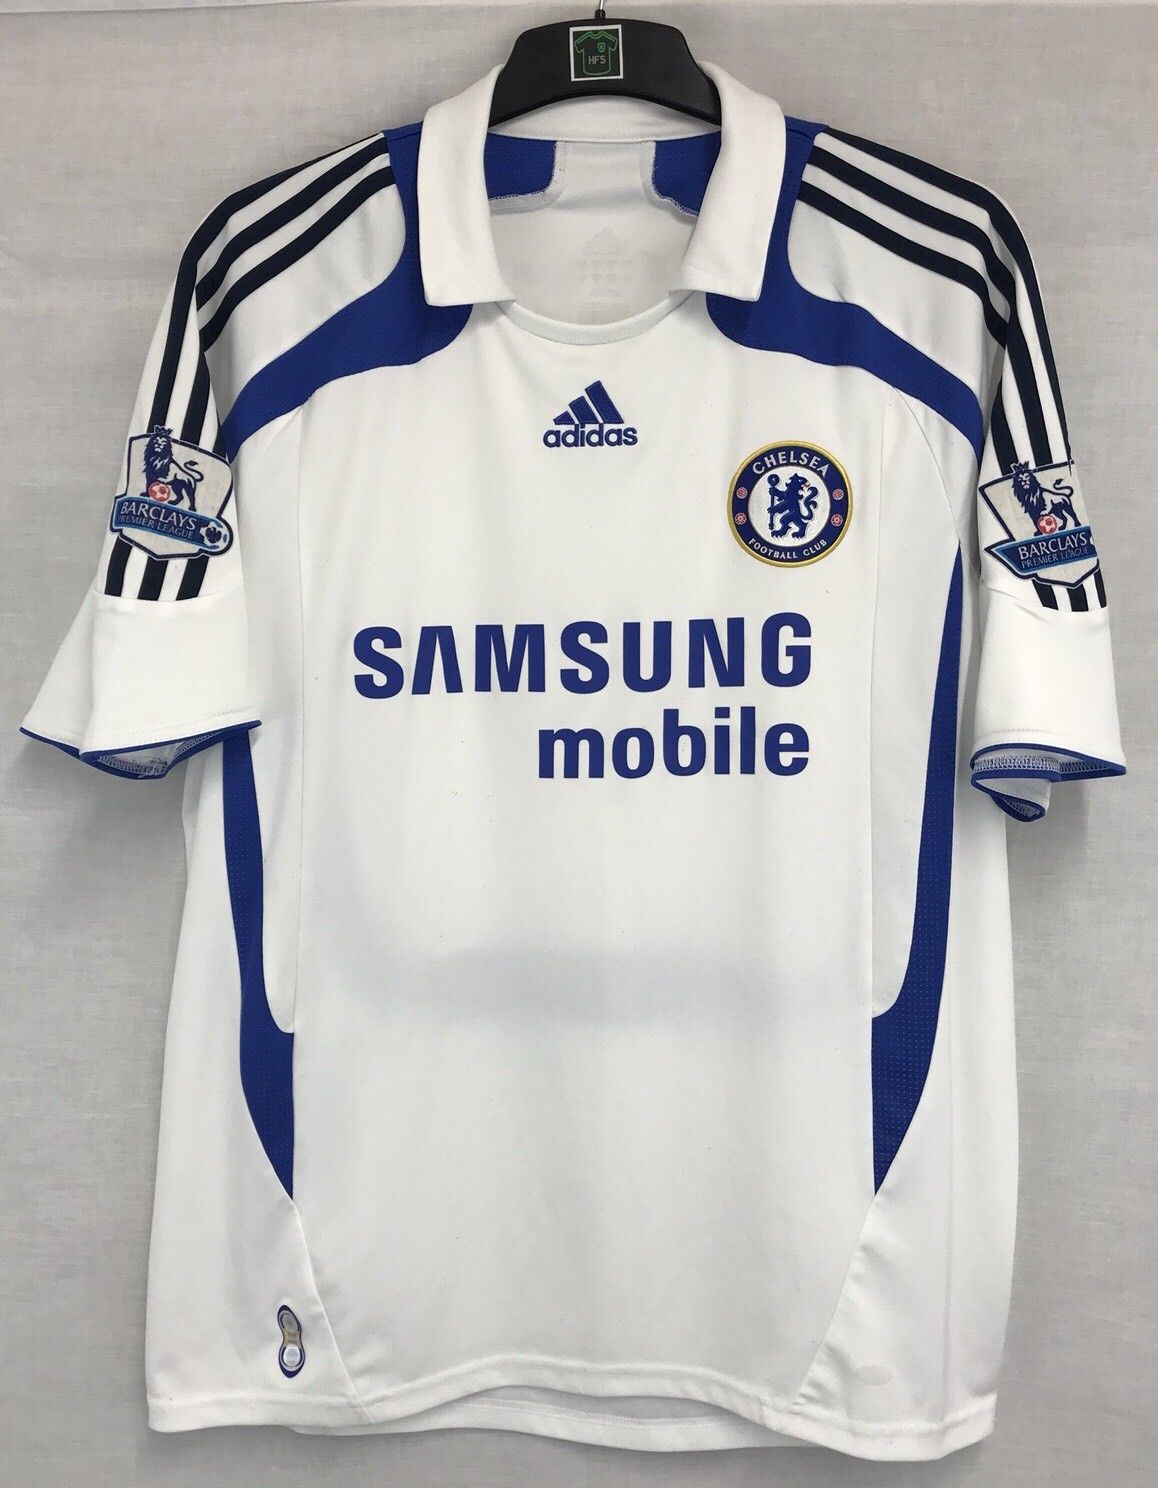 reputable site 15401 a6e15 Chelsea Frank Lampard 8 Football Shirt 2007/08 Adults Large Adidas